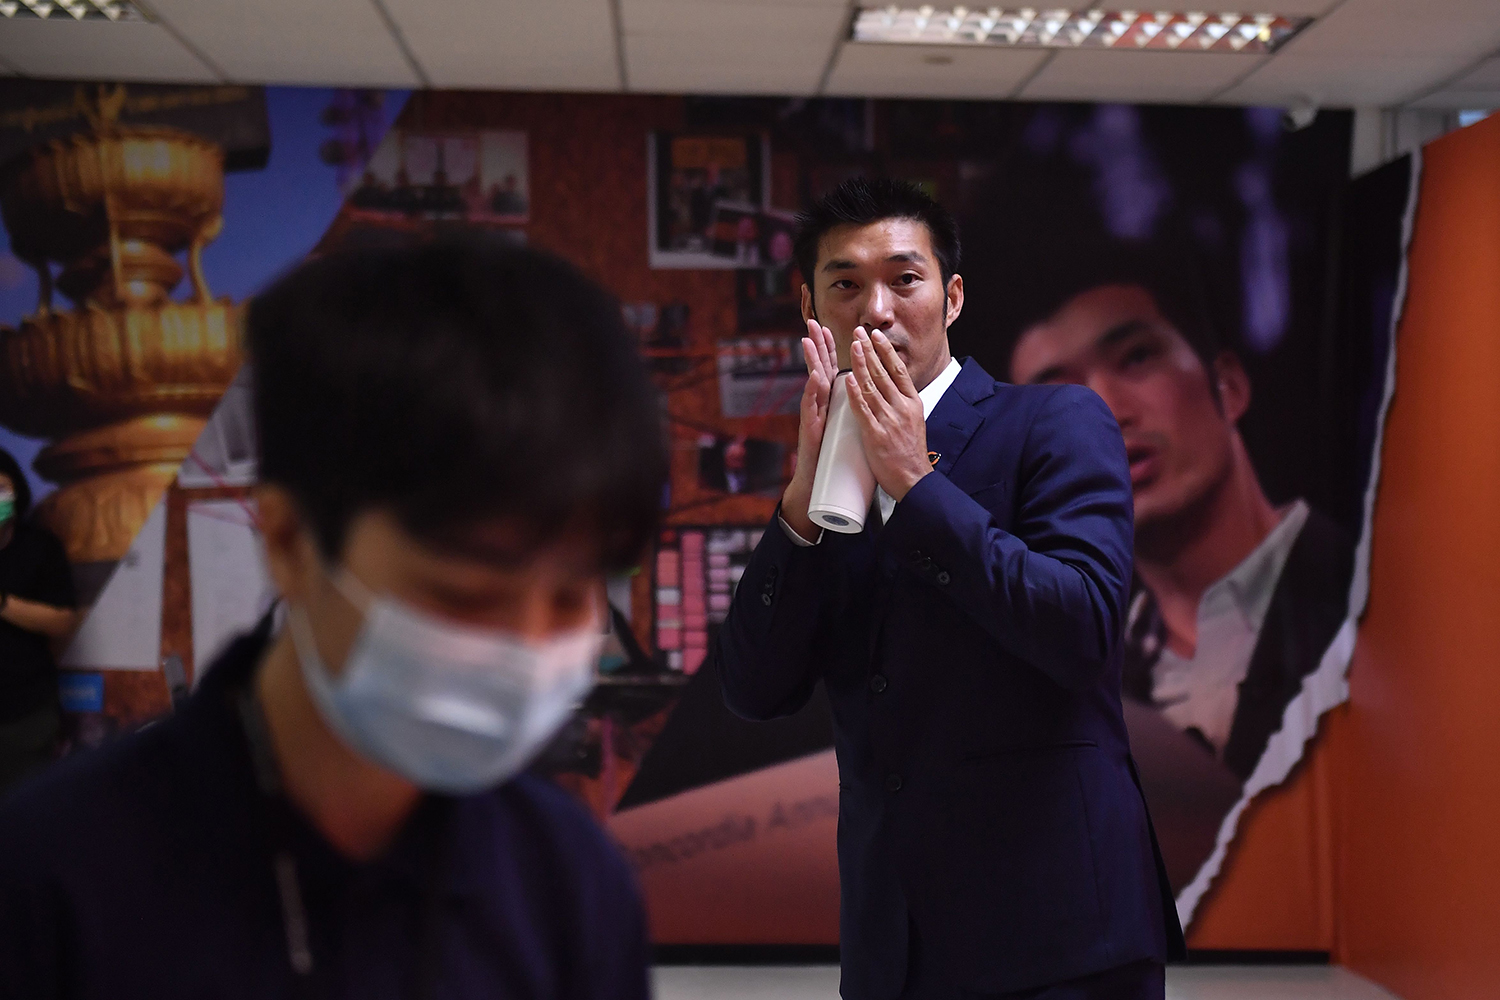 Thanathorn Juangroongruangkit gestures as he leaves a news conference in Bangkok on Jan. 21 after he was accused of contravening Thailand's strict royal defamation laws by posting a video criticizing the government's COVID-19 vaccine strategy.